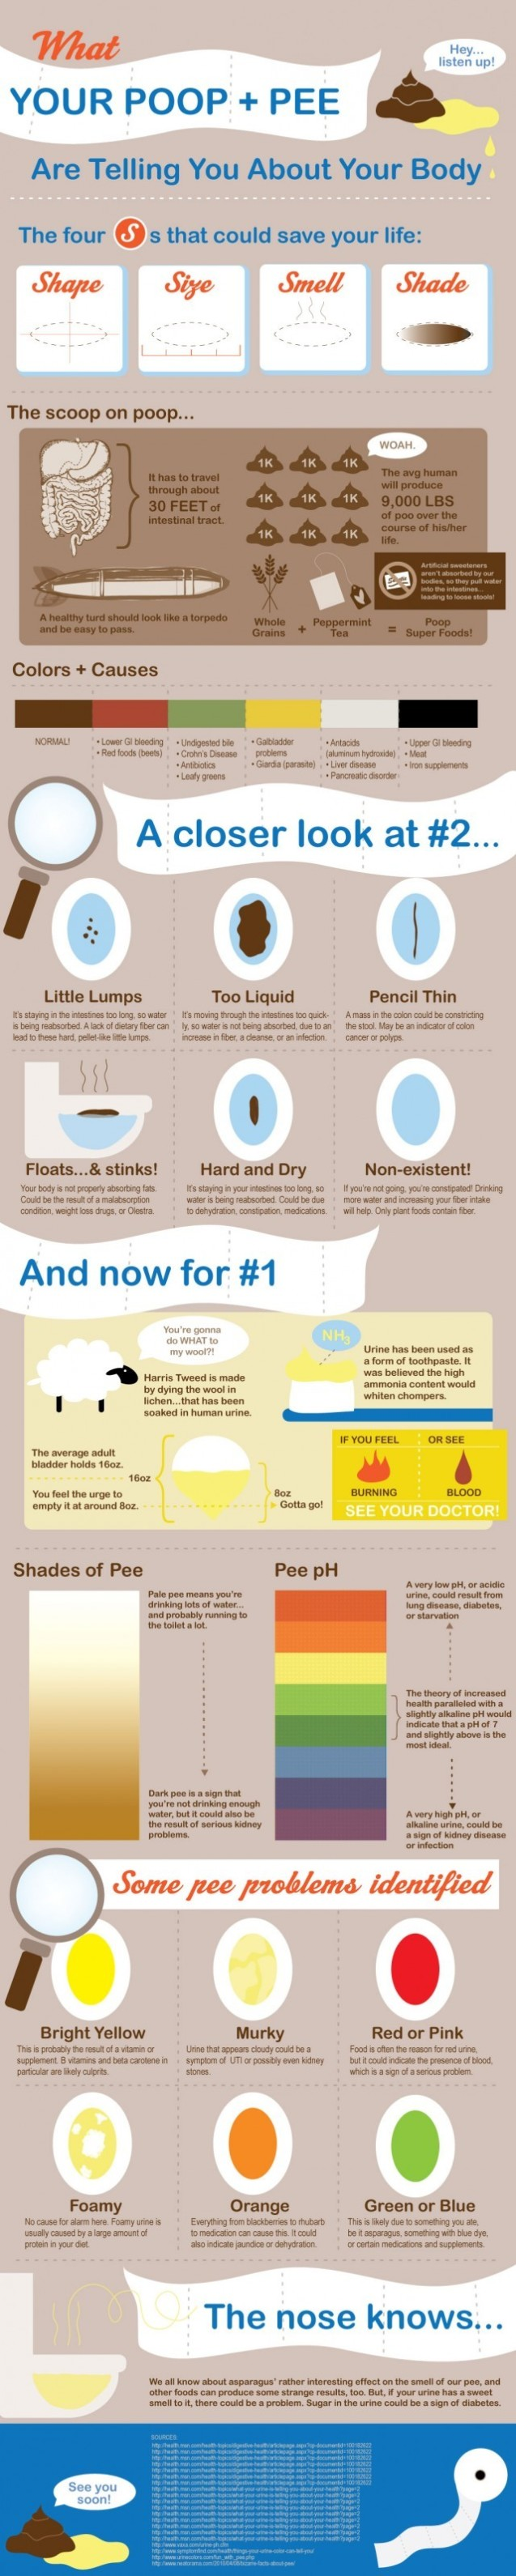 What your poo is telling you